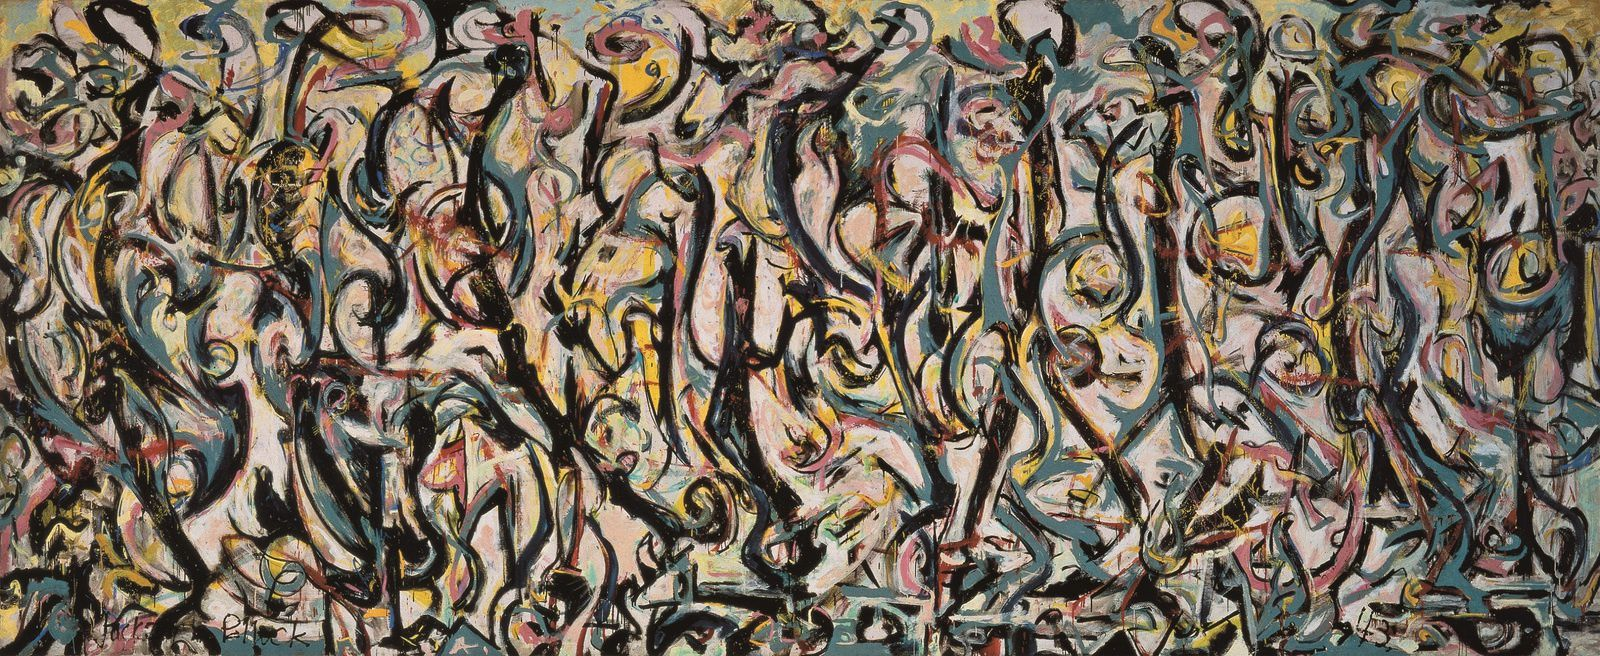 Jackson Pollock, Mural, 1943, oil and casein on canvas, 242.9 x 603.9 cm.. Gift of Peggy Guggenheim, 1959. University of Iowa Museum of Art. Reproduced with permission from The University of Iowa